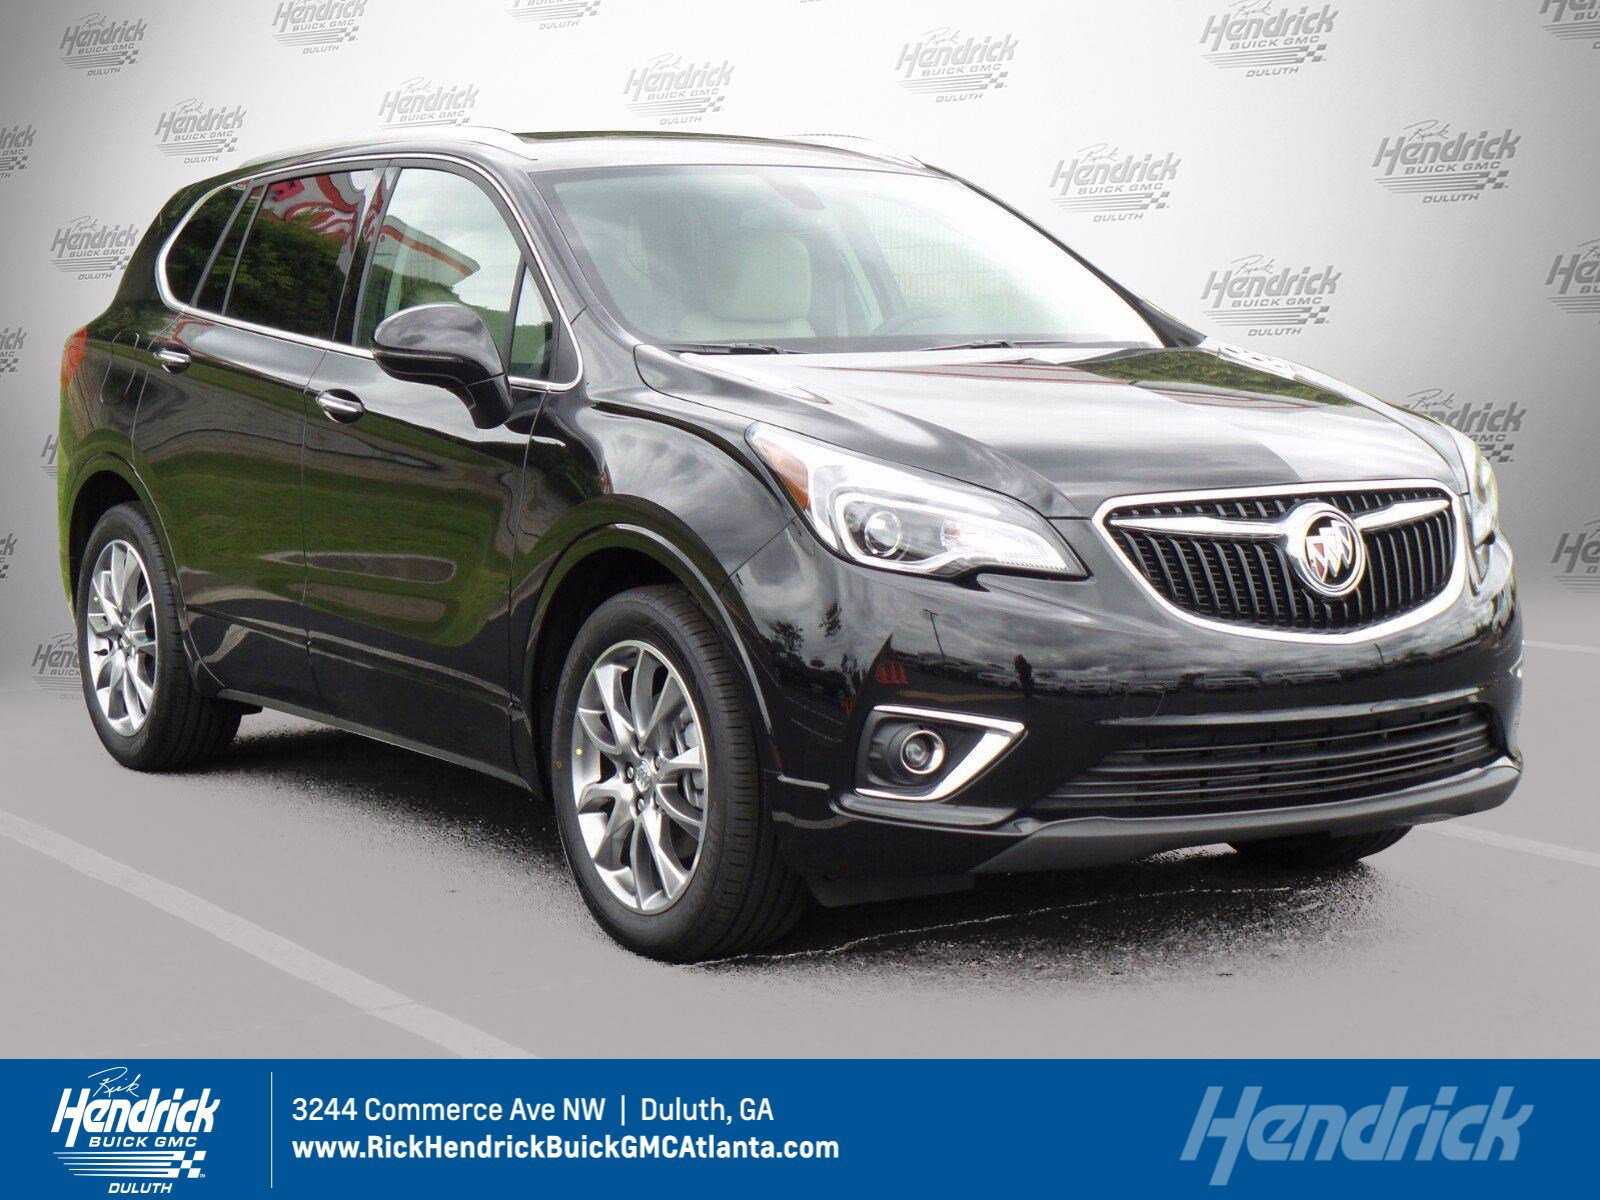 New 2020 Buick Envision Essence Fwd Suv 2021 Buick Envision Owners Manual, Options, Oil Change